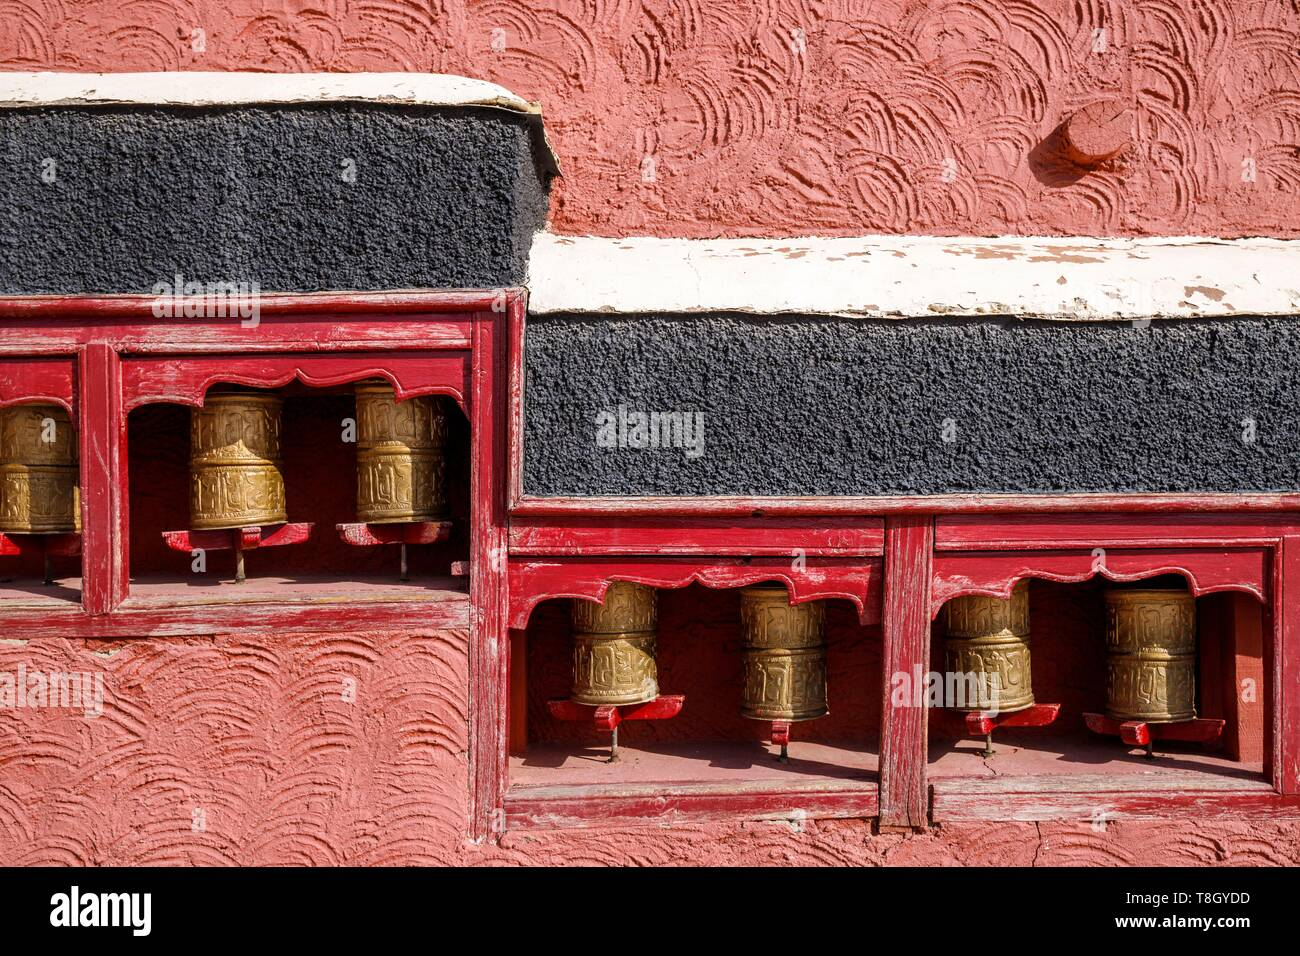 India, state of Jammu and Kashmir, Himalaya, Ladakh, Indus valley, alignment of prayer mills of Thiksey gompa (monastery) - Stock Image